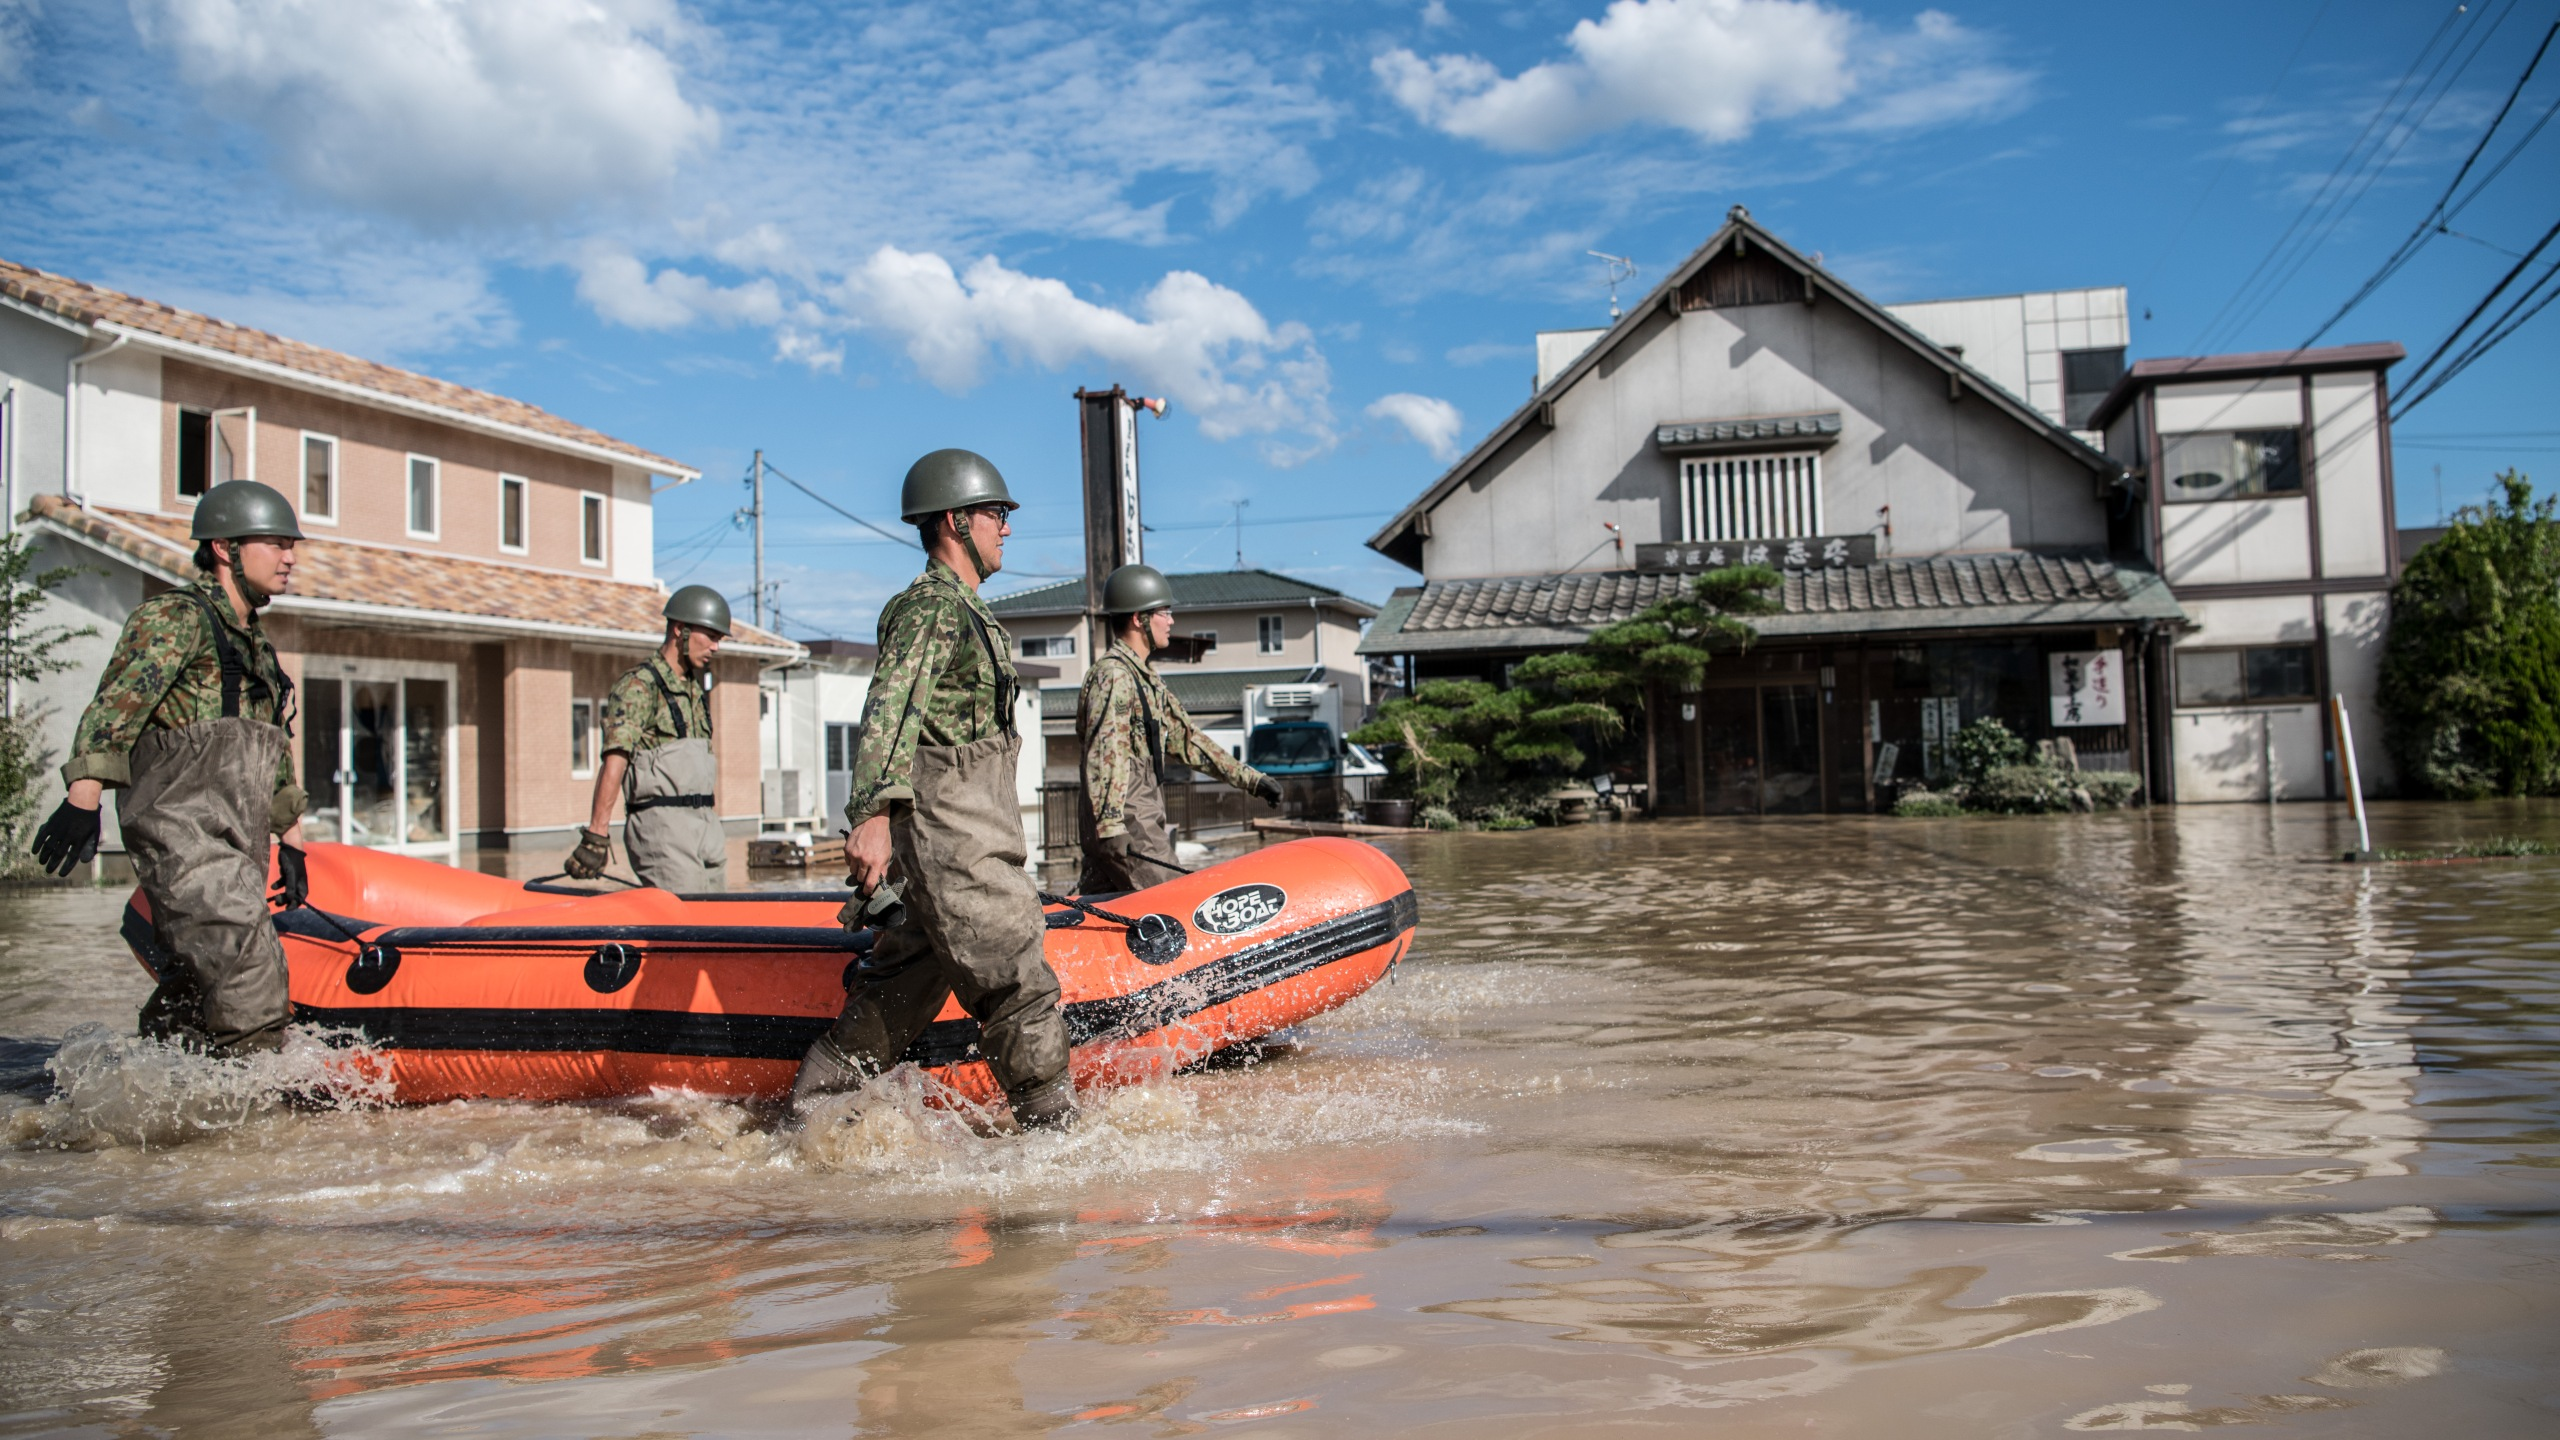 Soldiers push a boat as they prepare to search for survivors following heavy flooding, on July 8, 2018 in Kurashiki near Okayama, Japan. (Credit: Carl Court/Getty Images)